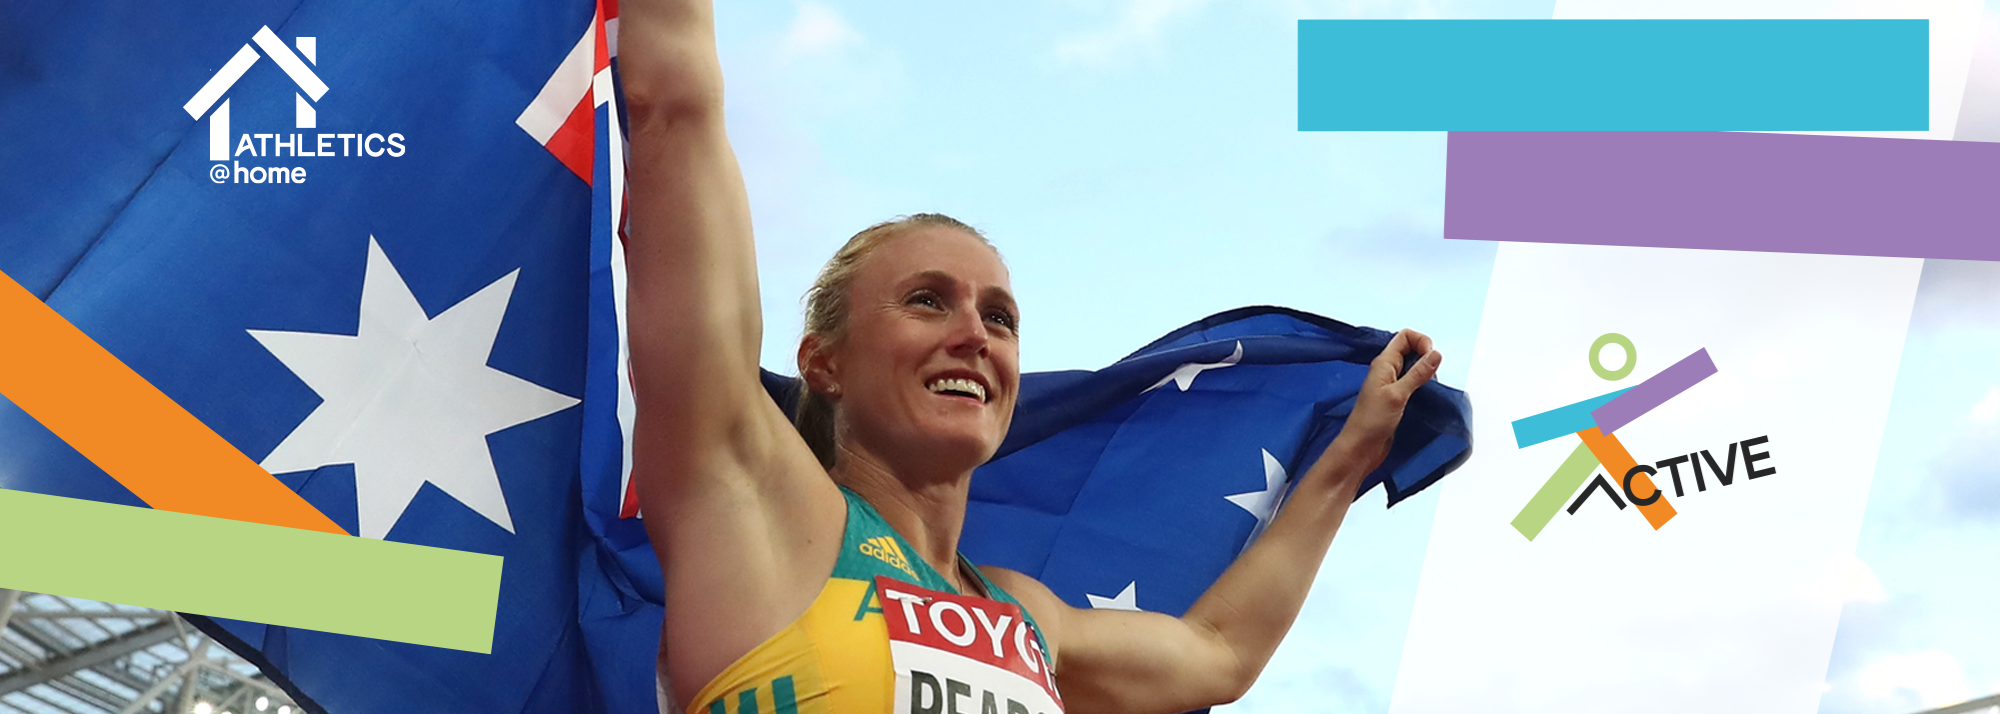 Sally Pearson's home workout